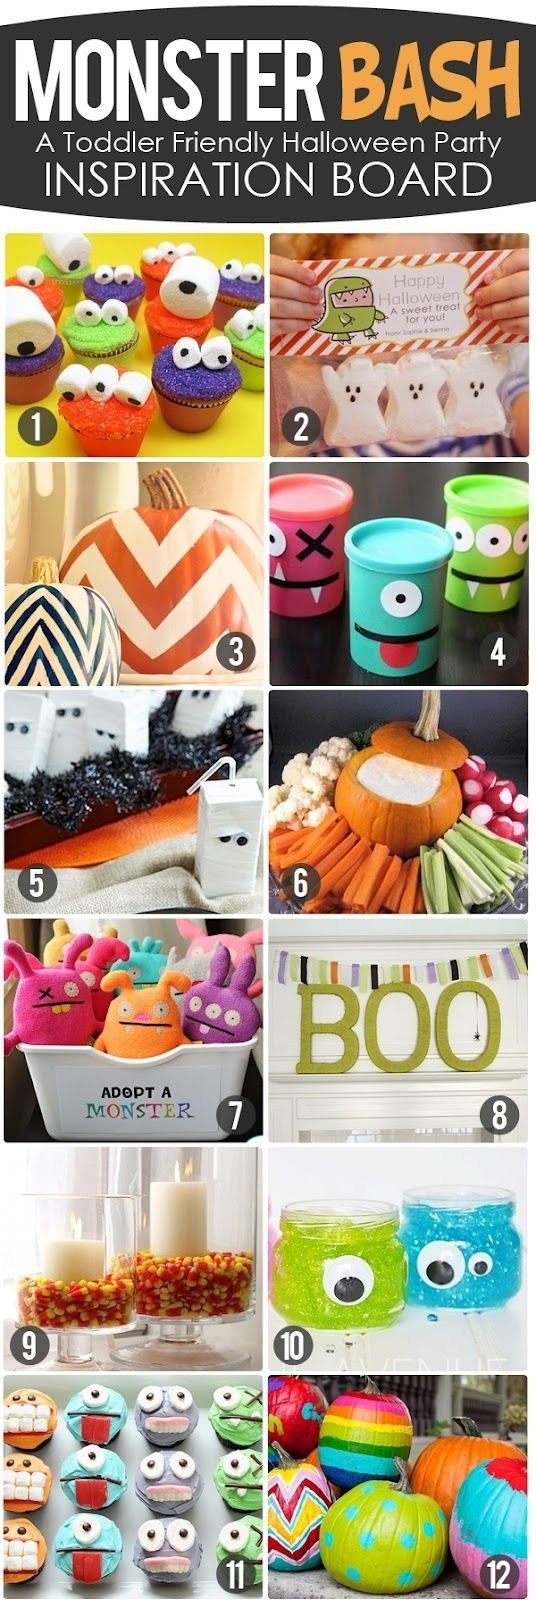 10 Gorgeous Halloween Party Ideas For Toddlers the busy budgeting mama monster bash toddler friendly halloween 1 2020